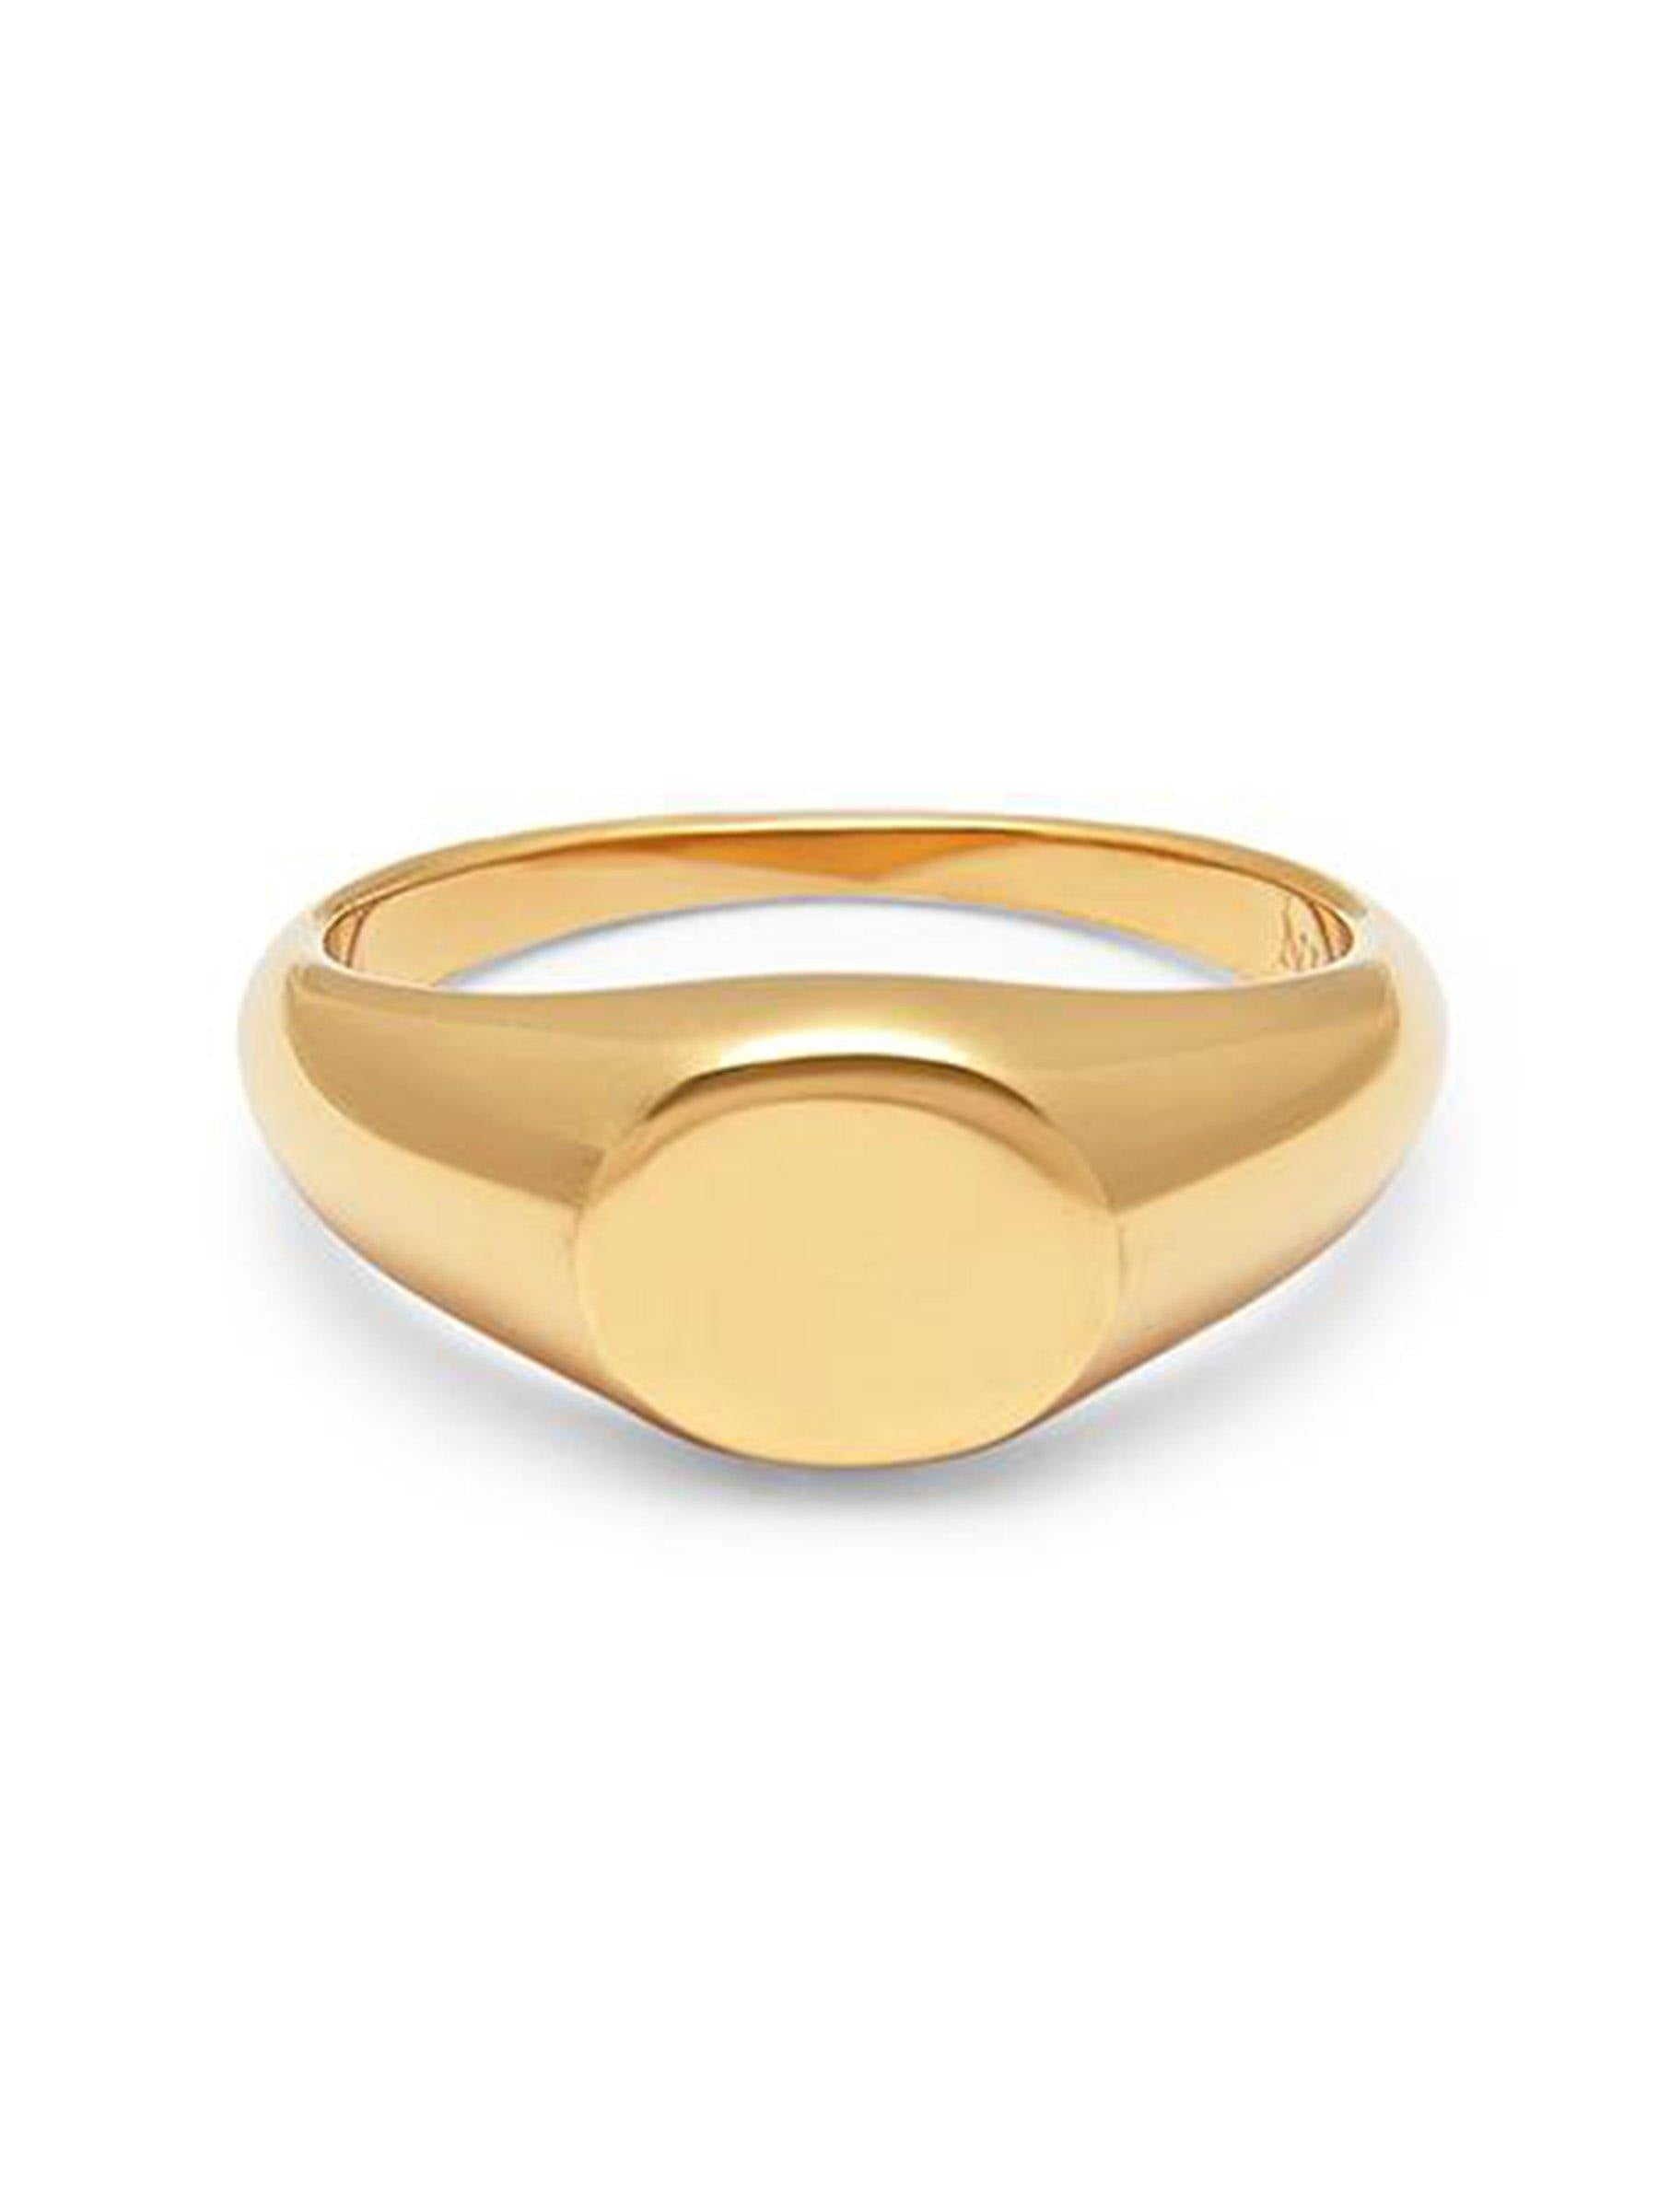 Men's Gold Mini Signet Ring - Nialaya Jewelry